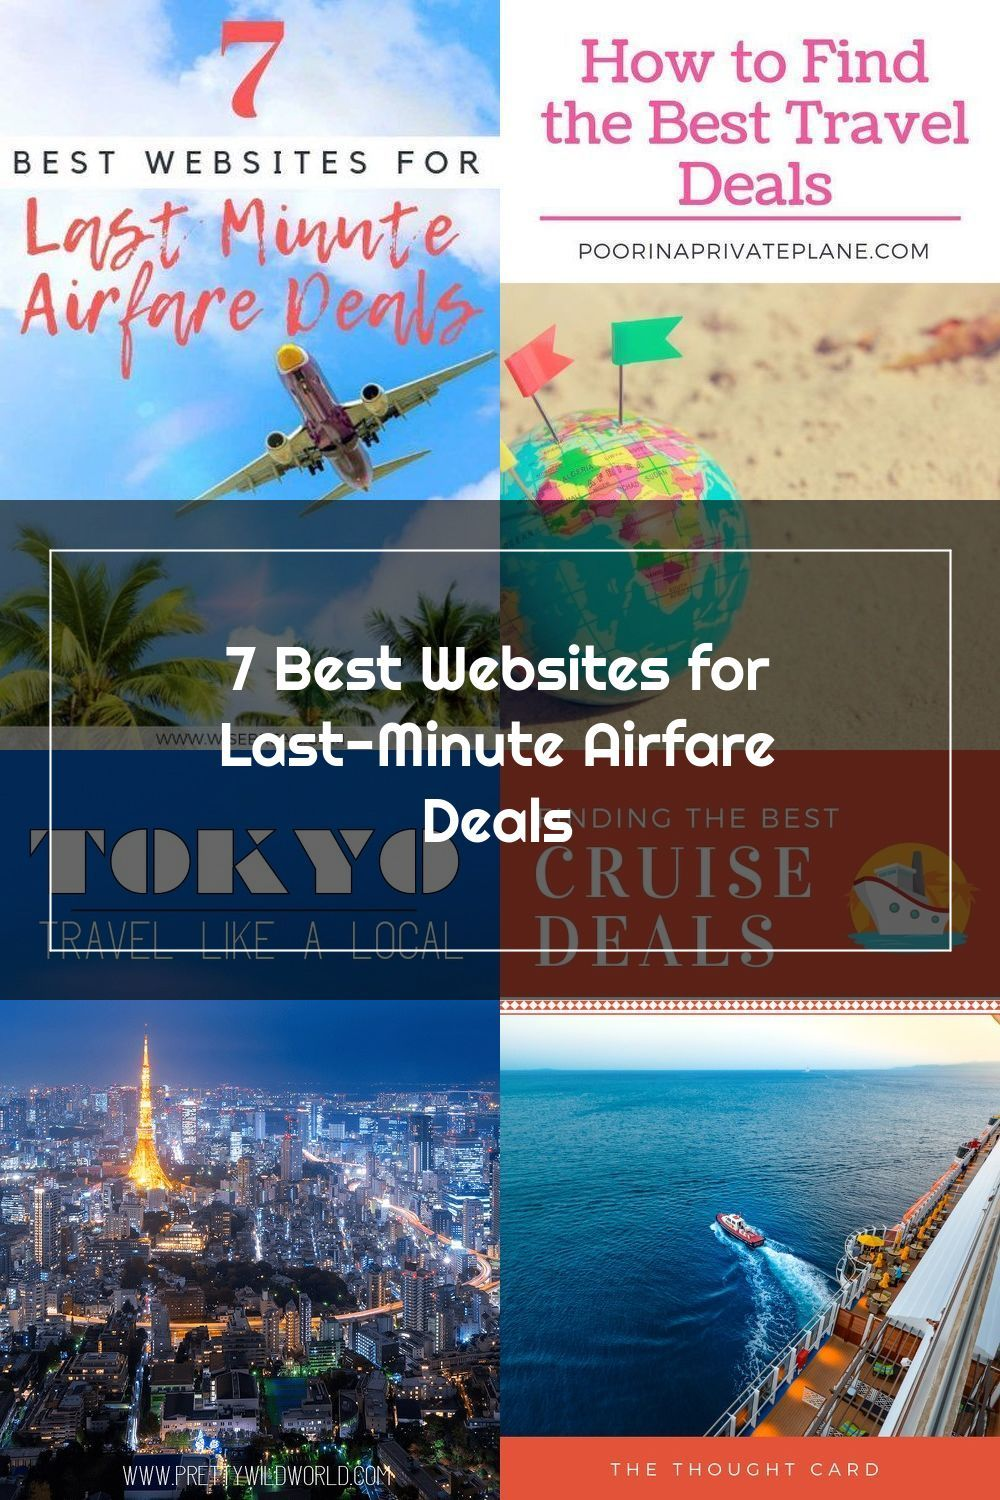 Planning on going on your annual vacations? Or just want to get away for the holidays? We've got the best websites to get last minute airfare deals! This is one of the top travel hacks and tips so you can save money by getting cheap flights and airline deals! Get ready to plan your trip! | #travelhacks #cheapflights #airfaredeals